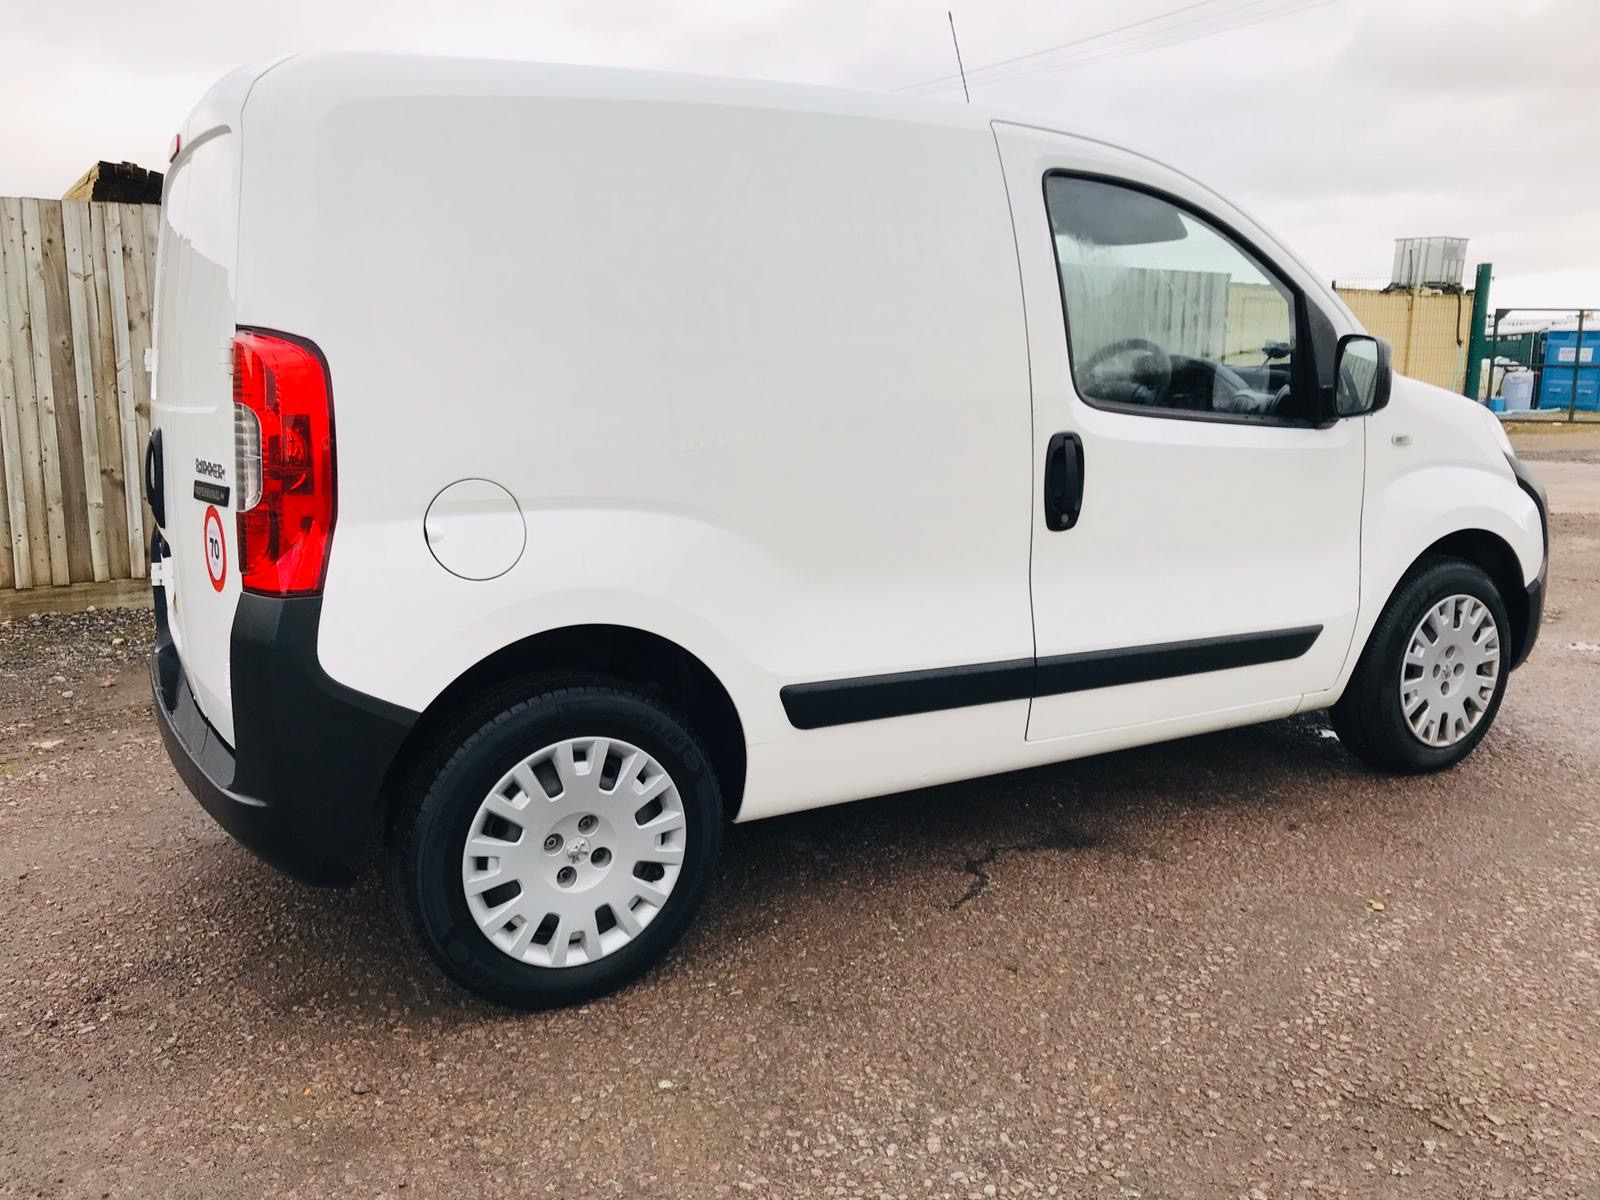 """(ON SALE) PEUGEOT BIPPER 1.3""""HDI"""" PROFESSIONAL - 2016 MODEL - 1 OWNER - FSH - AIR CON - SLD - Image 3 of 13"""